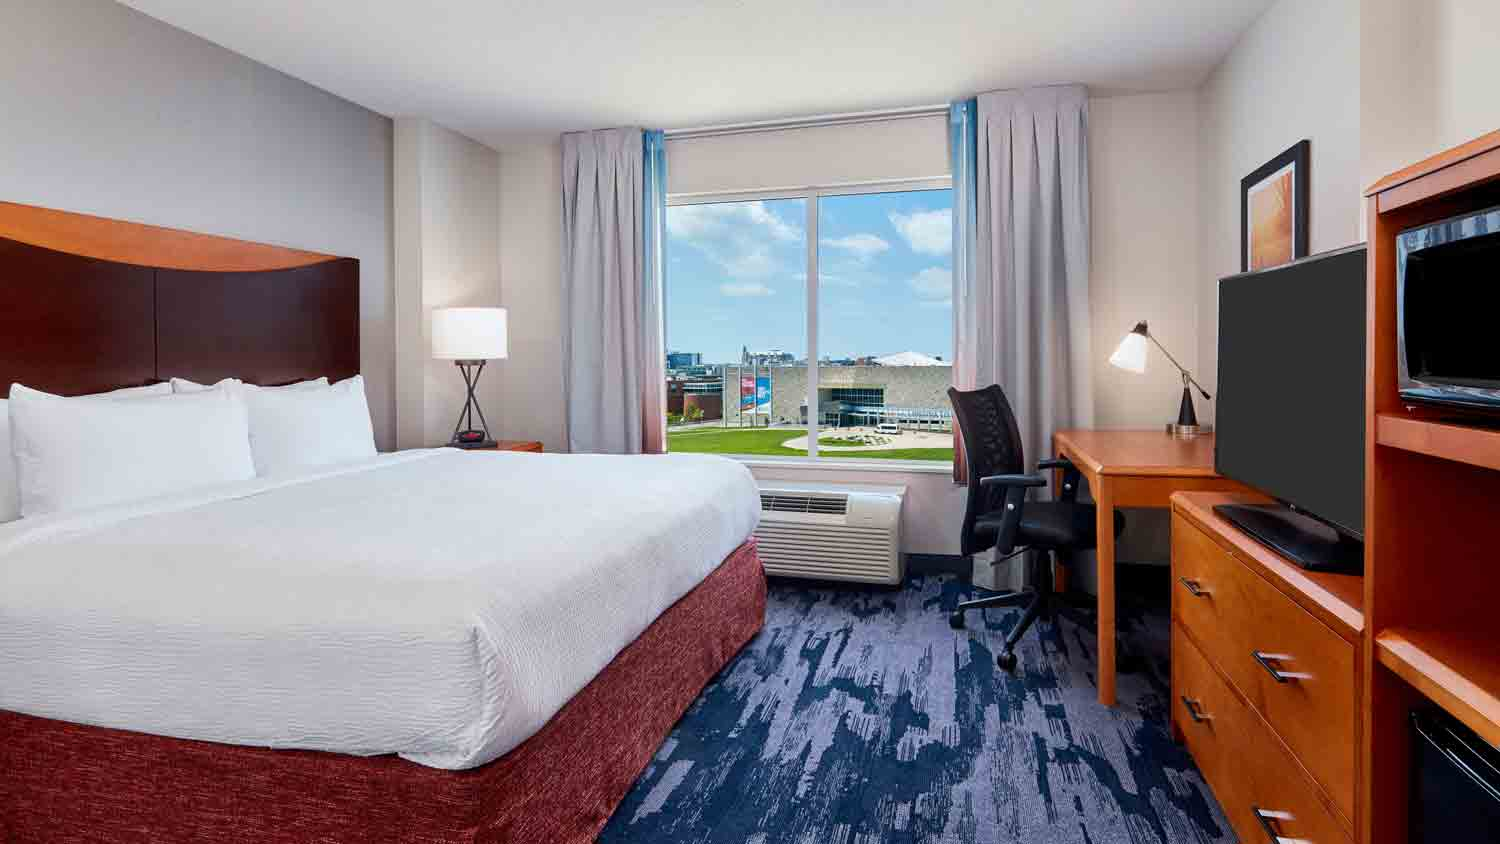 Fairfield Inn & Suites by Marriott Downtown Indianapolis 9